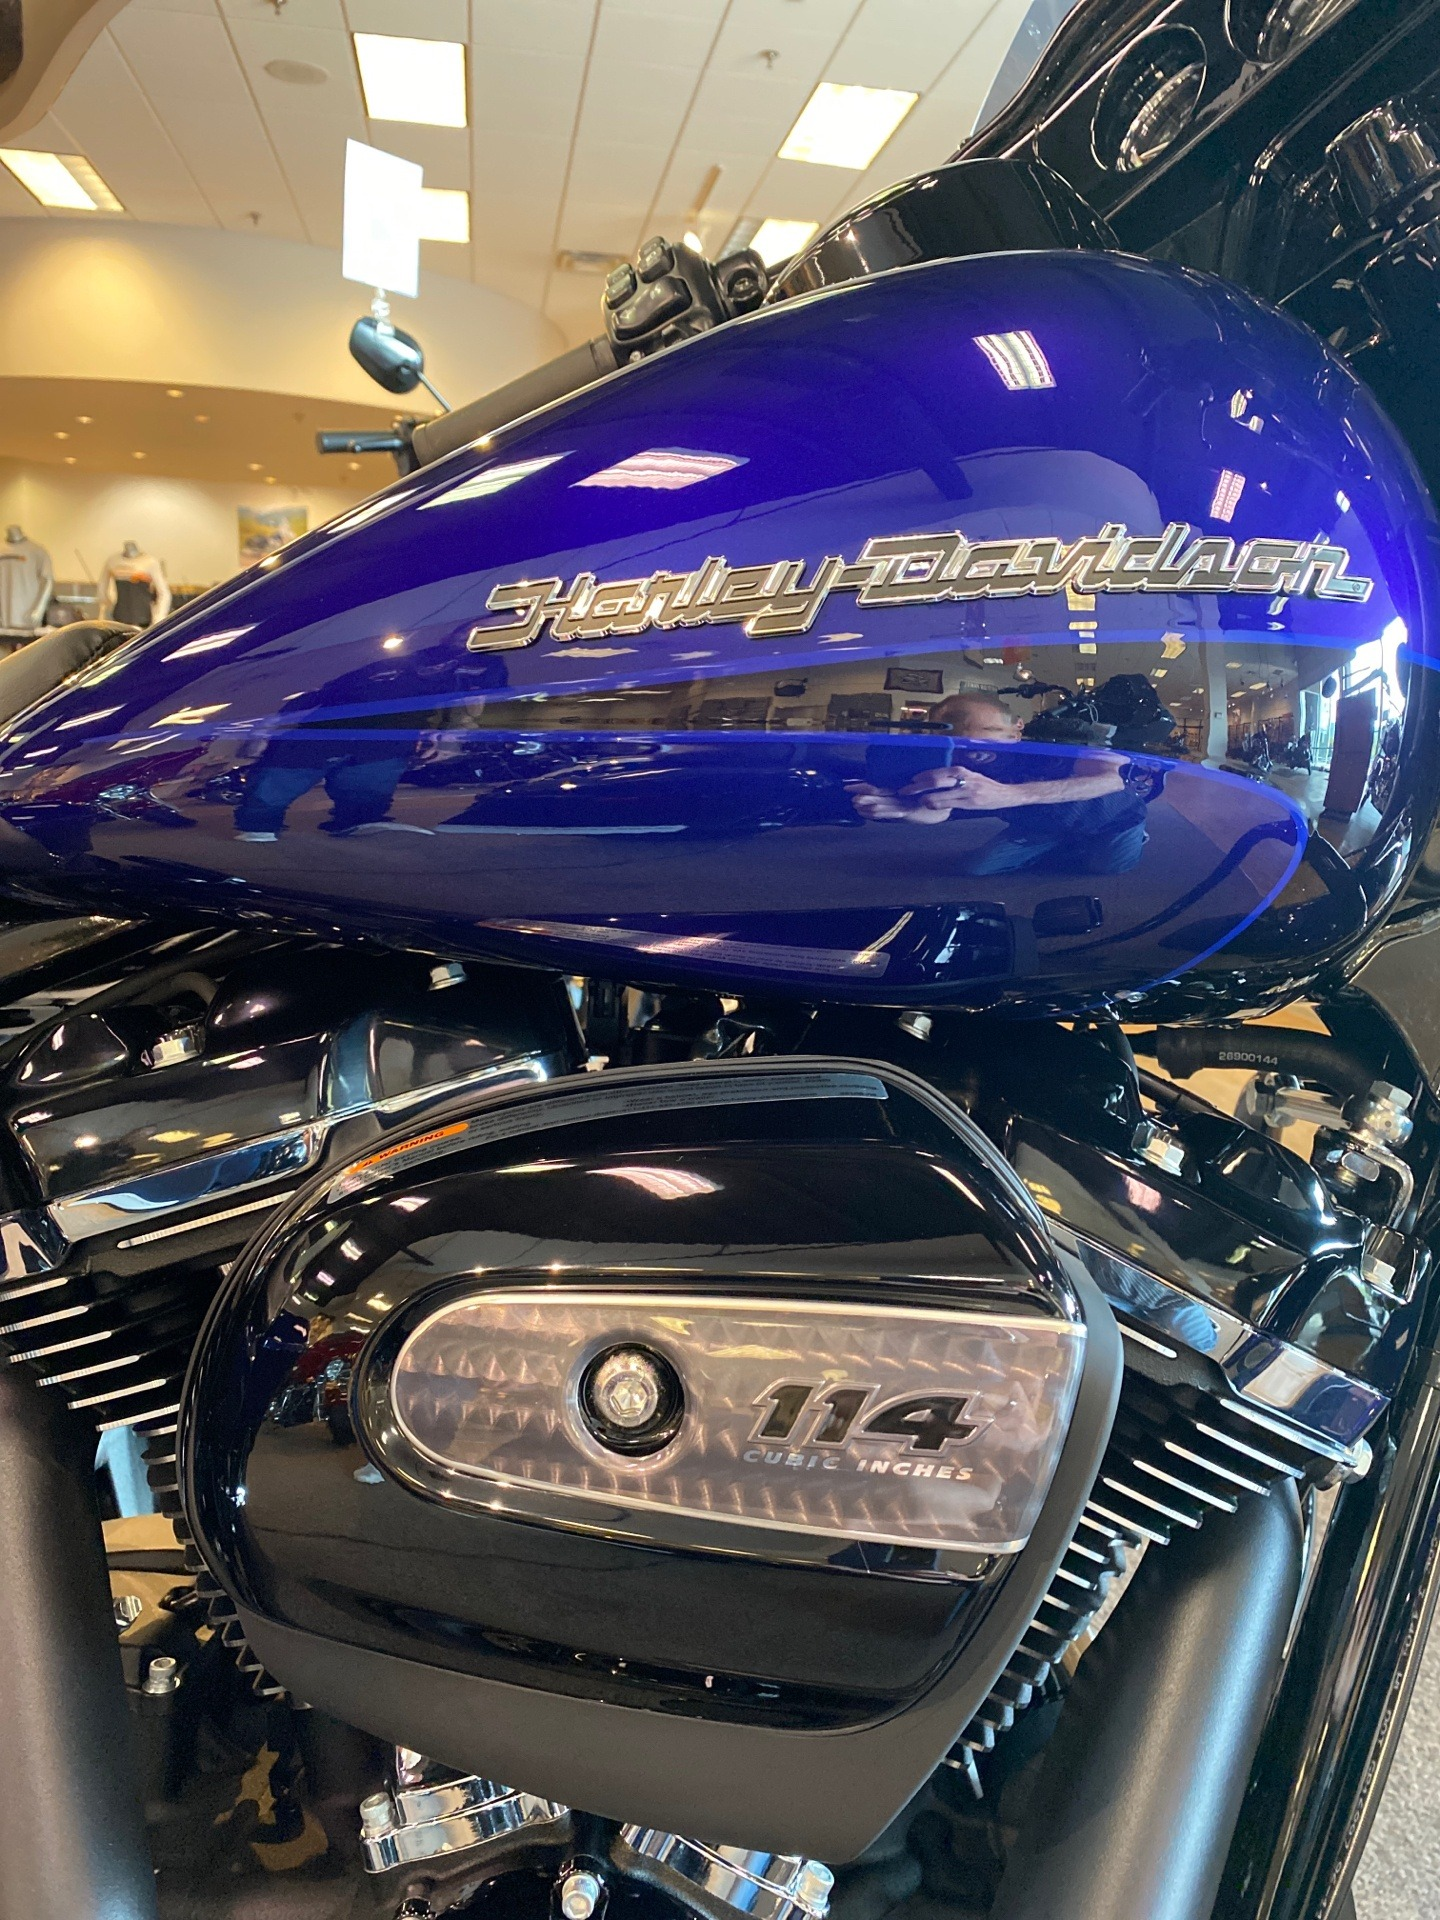 2020 Harley-Davidson Street Glide Special in Roanoke, Virginia - Photo 2